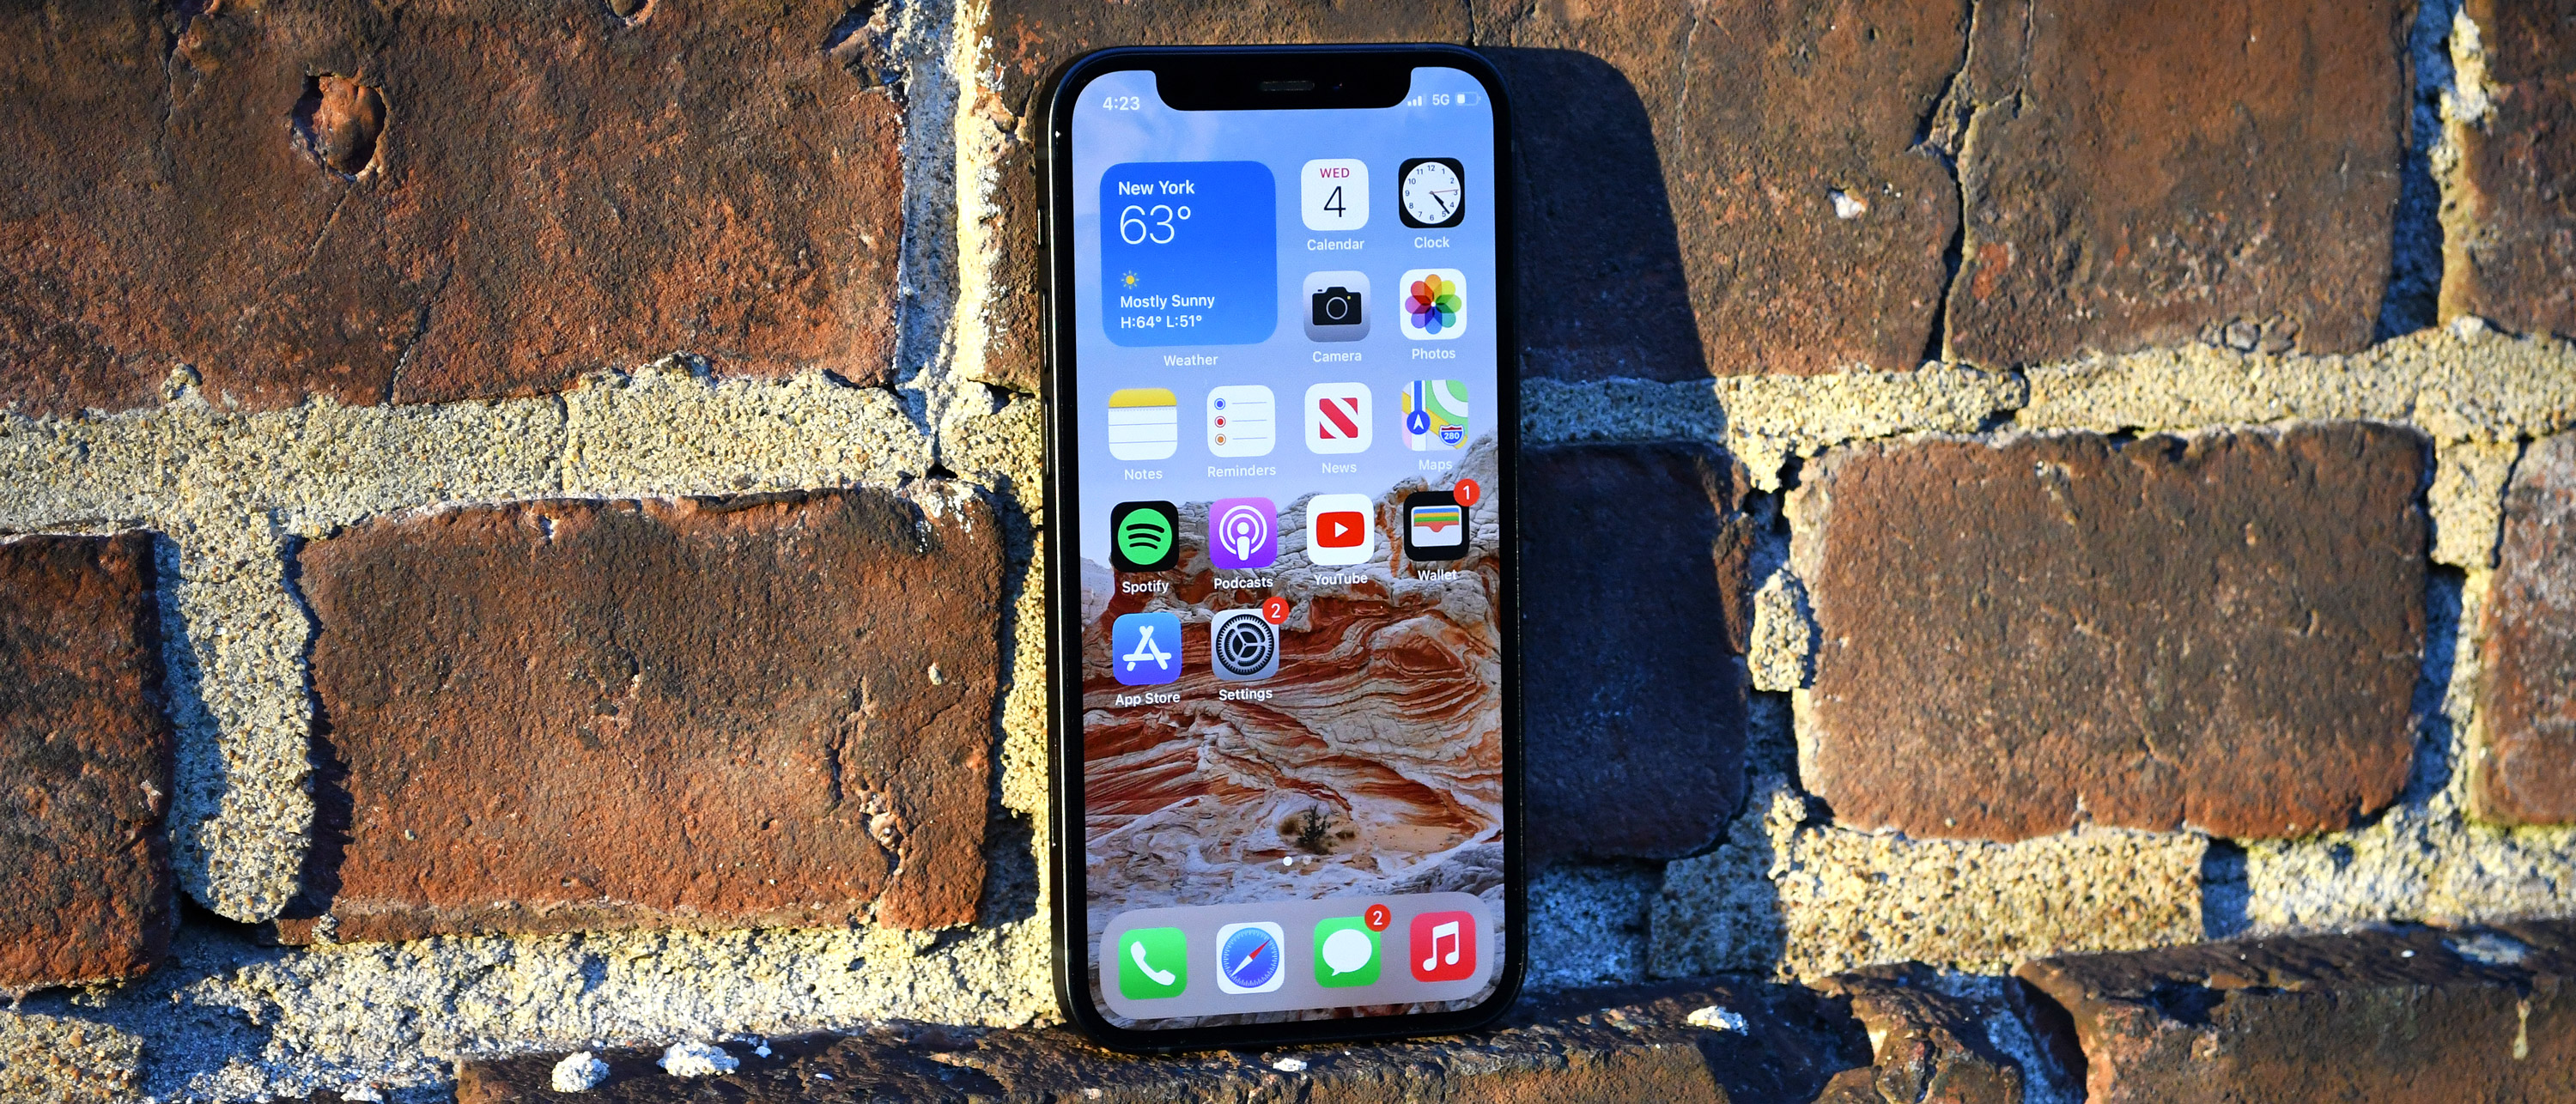 iPhone 12 mini review: This is a revelation | Tom's Guide